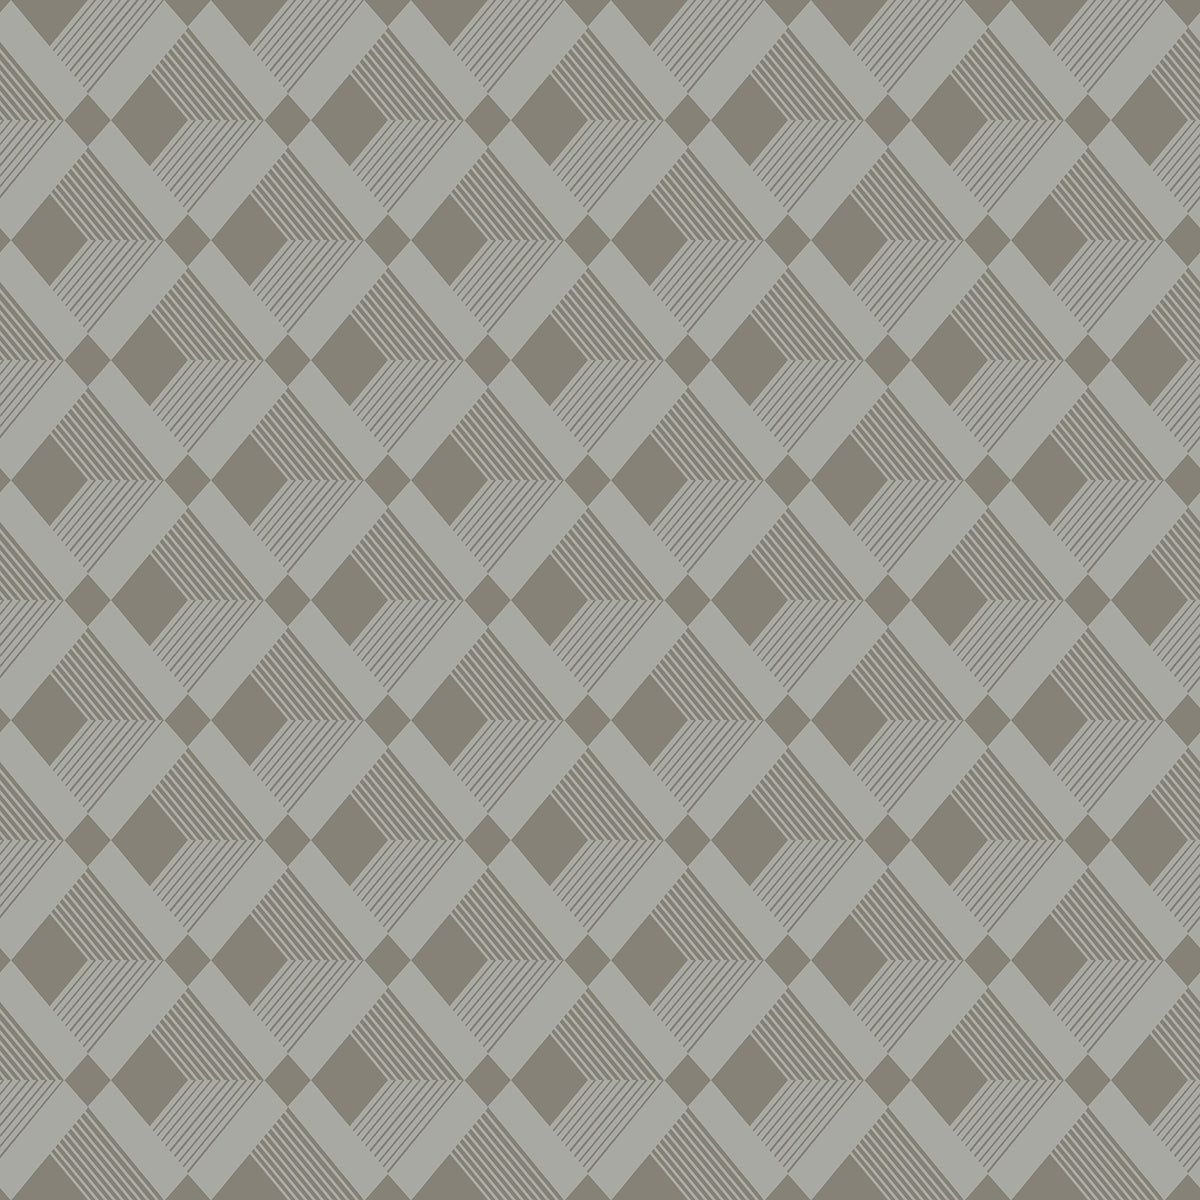 Dwell Studio Esher Wallpaper - Metallics (Geometric)